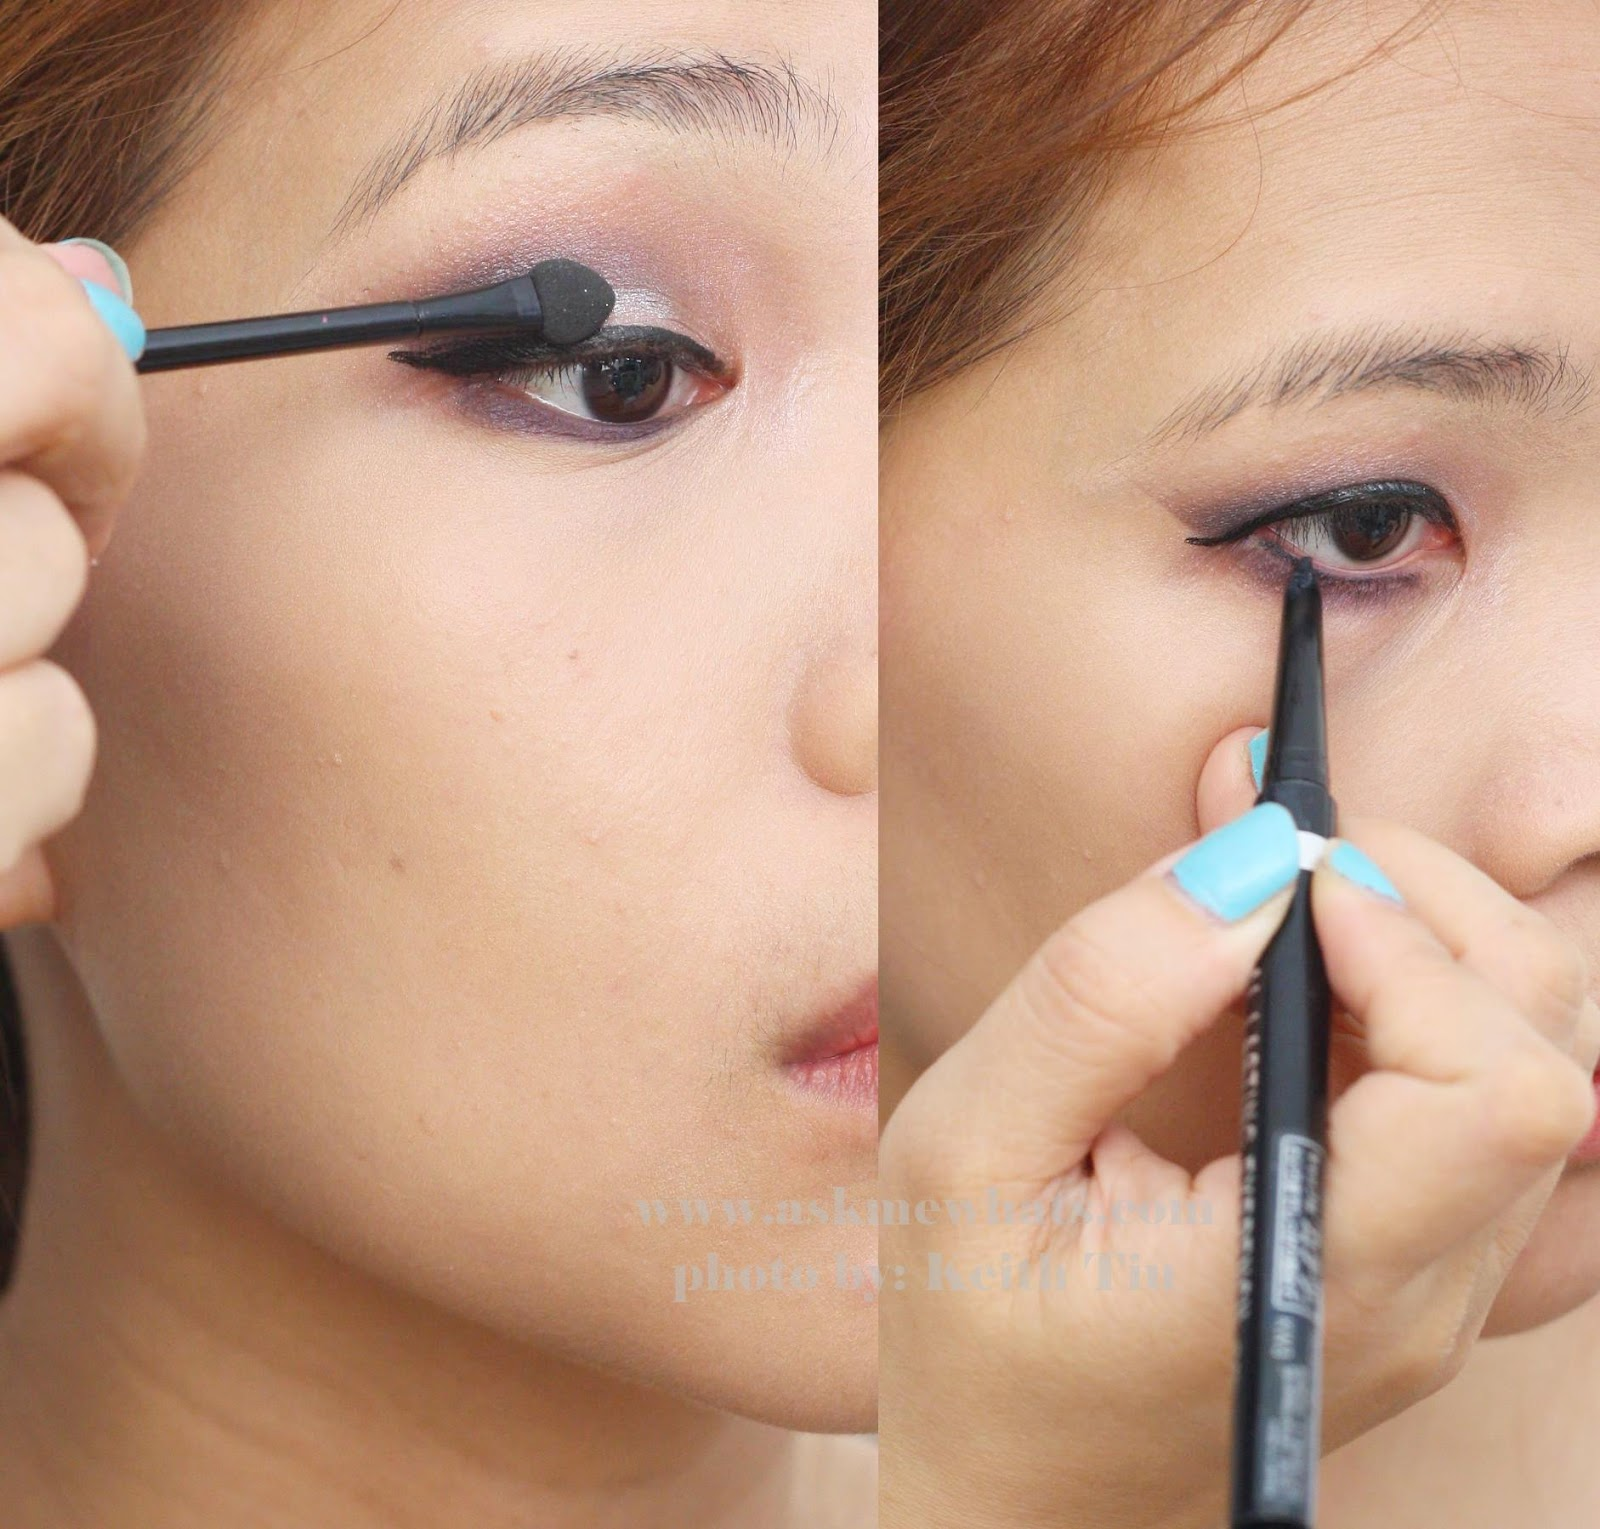 ... - Top Beauty Blogger Philippines - Skincare Makeup Review